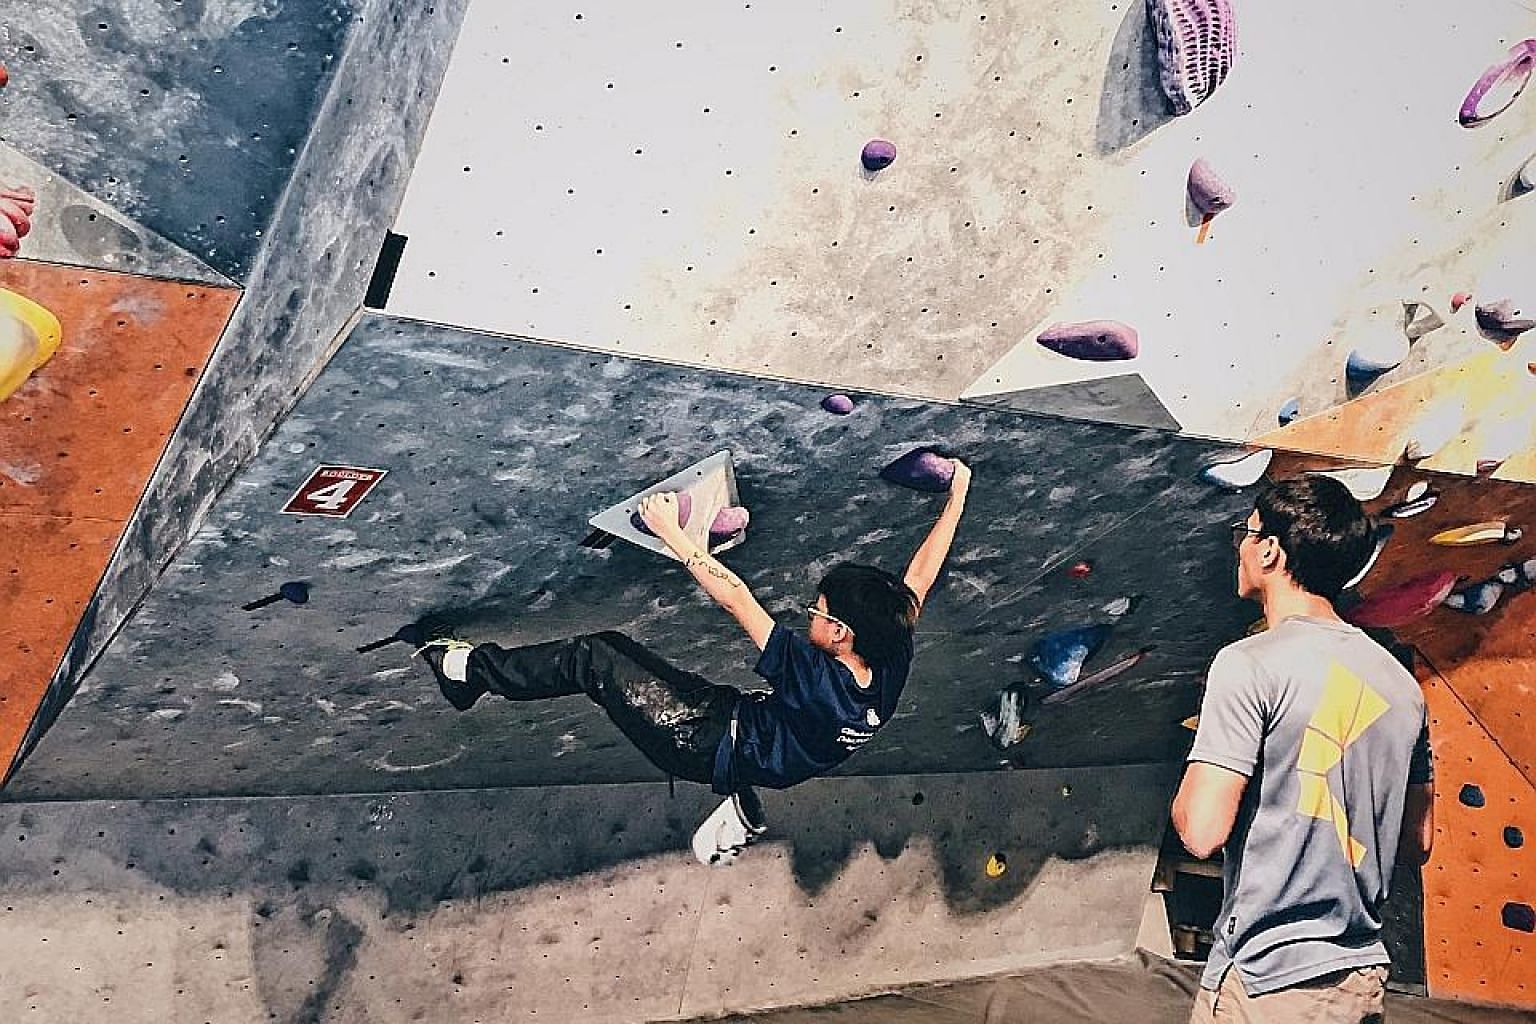 Primary 6 pupil Dylan Seow, 11, participating in a rock-climbing competition last year. He is applying for this year's Direct School Admission exercise through the sport.